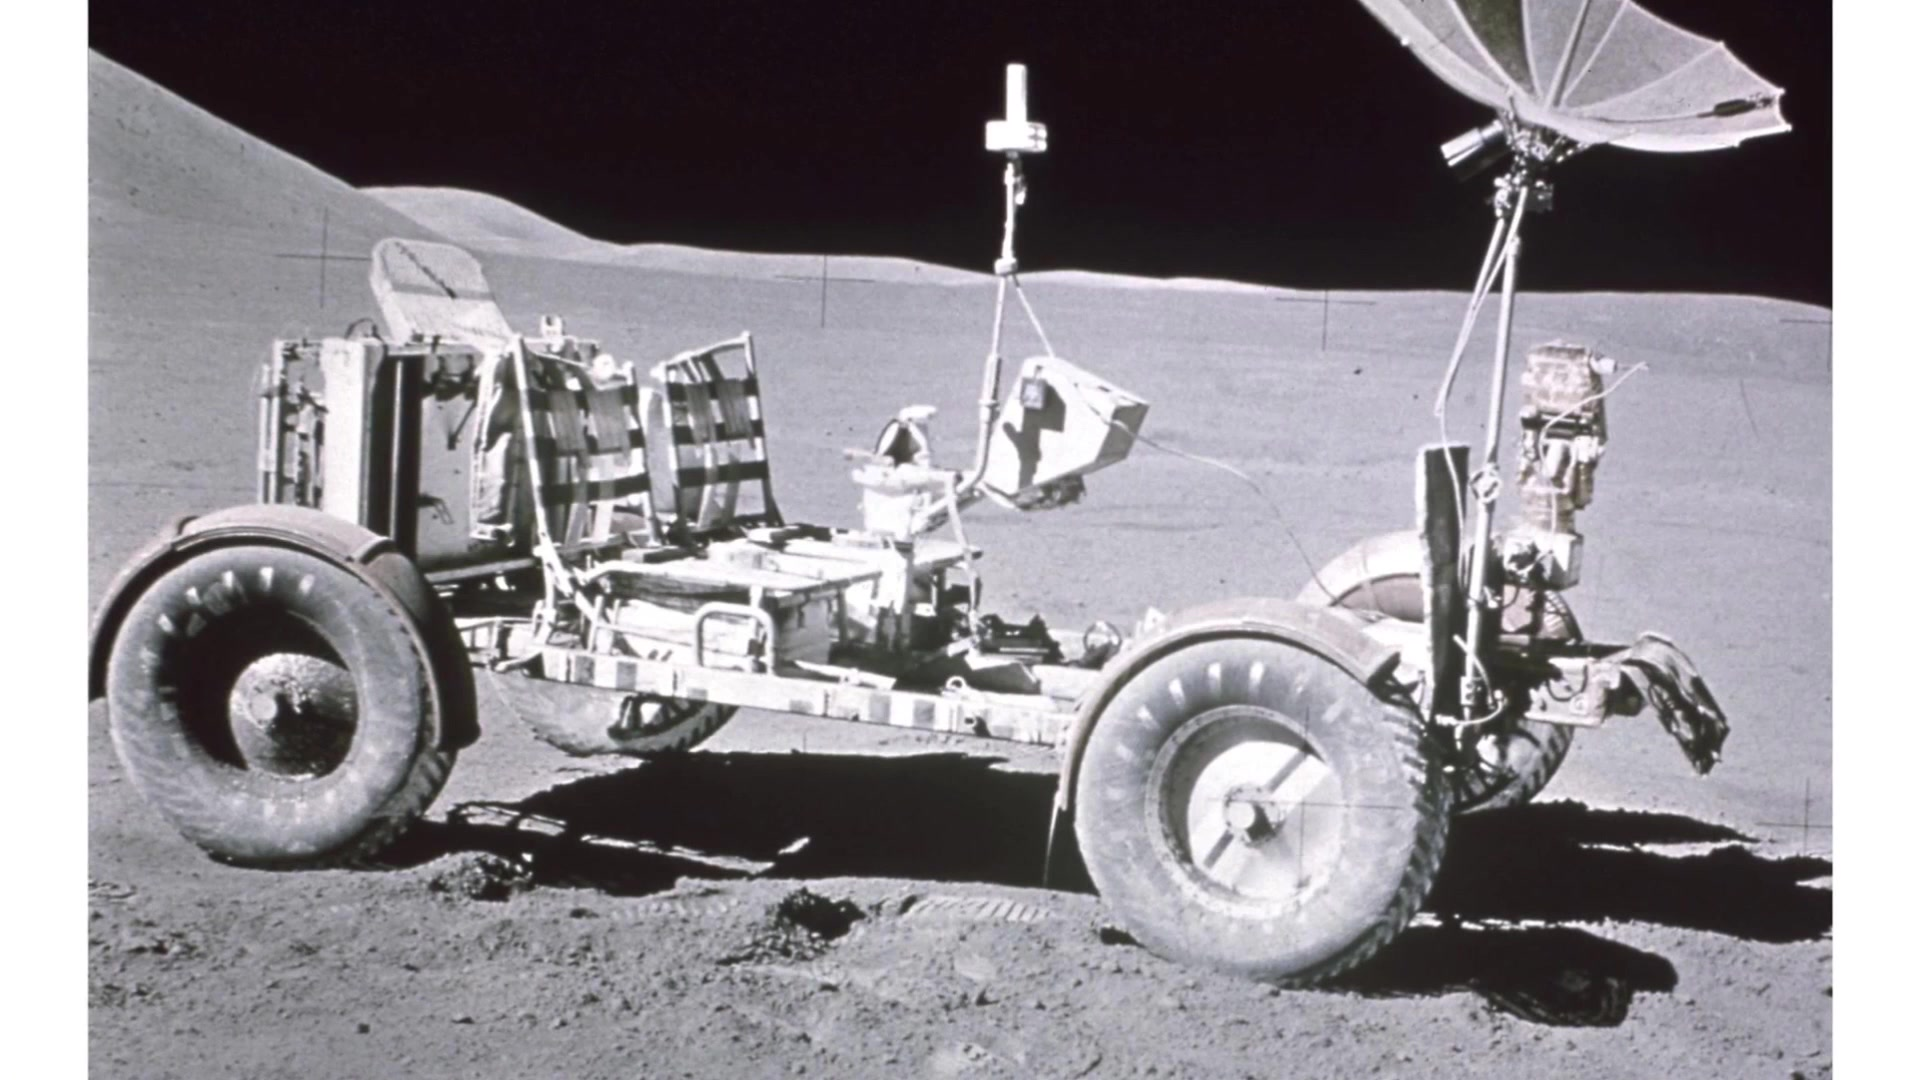 ERDC Historian Terry Winschel discusses the work done at Waterways Experiment Station to test the wheels of the Lunar Roving Vehicle that was driven on the surface of the moon.